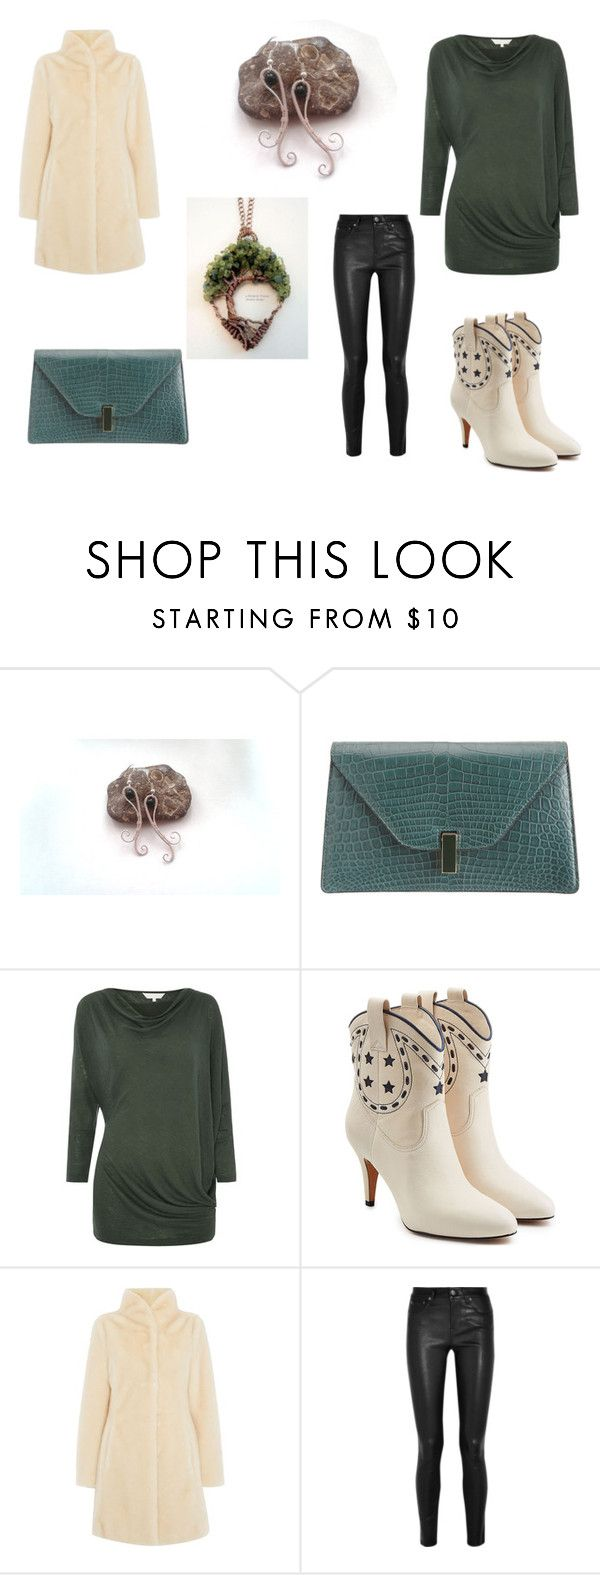 """Green With Ivory!"" by monika-przymuszala ❤ liked on Polyvore featuring Valextra, Gray & Willow, Marc Jacobs, Episode and Helmut Lang"